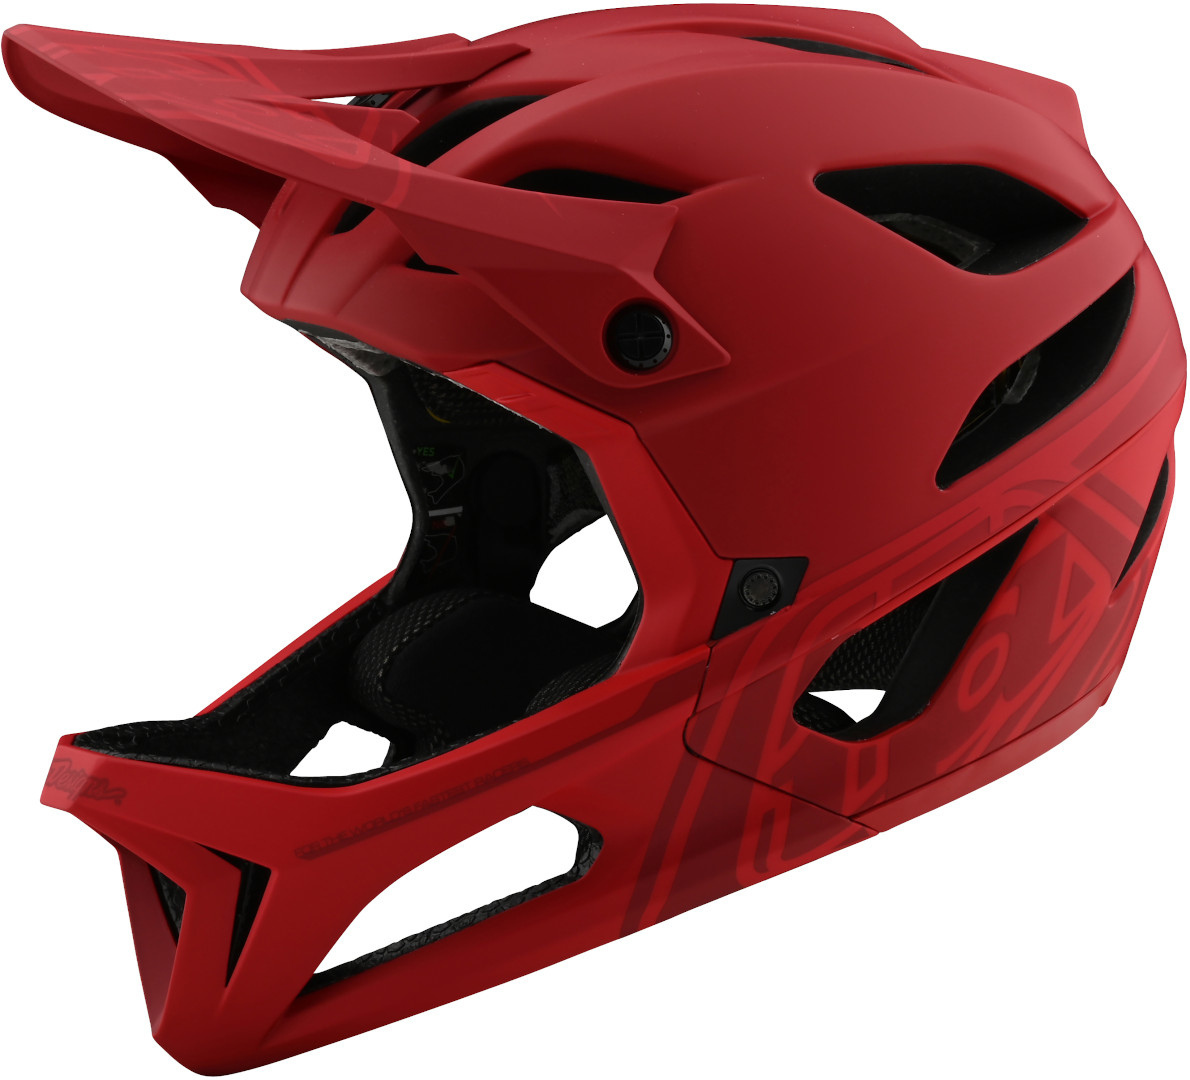 Troy Lee Designs Stage Stealth MIPS Helmet, red, Size XL 2XL, red, Size XL 2XL